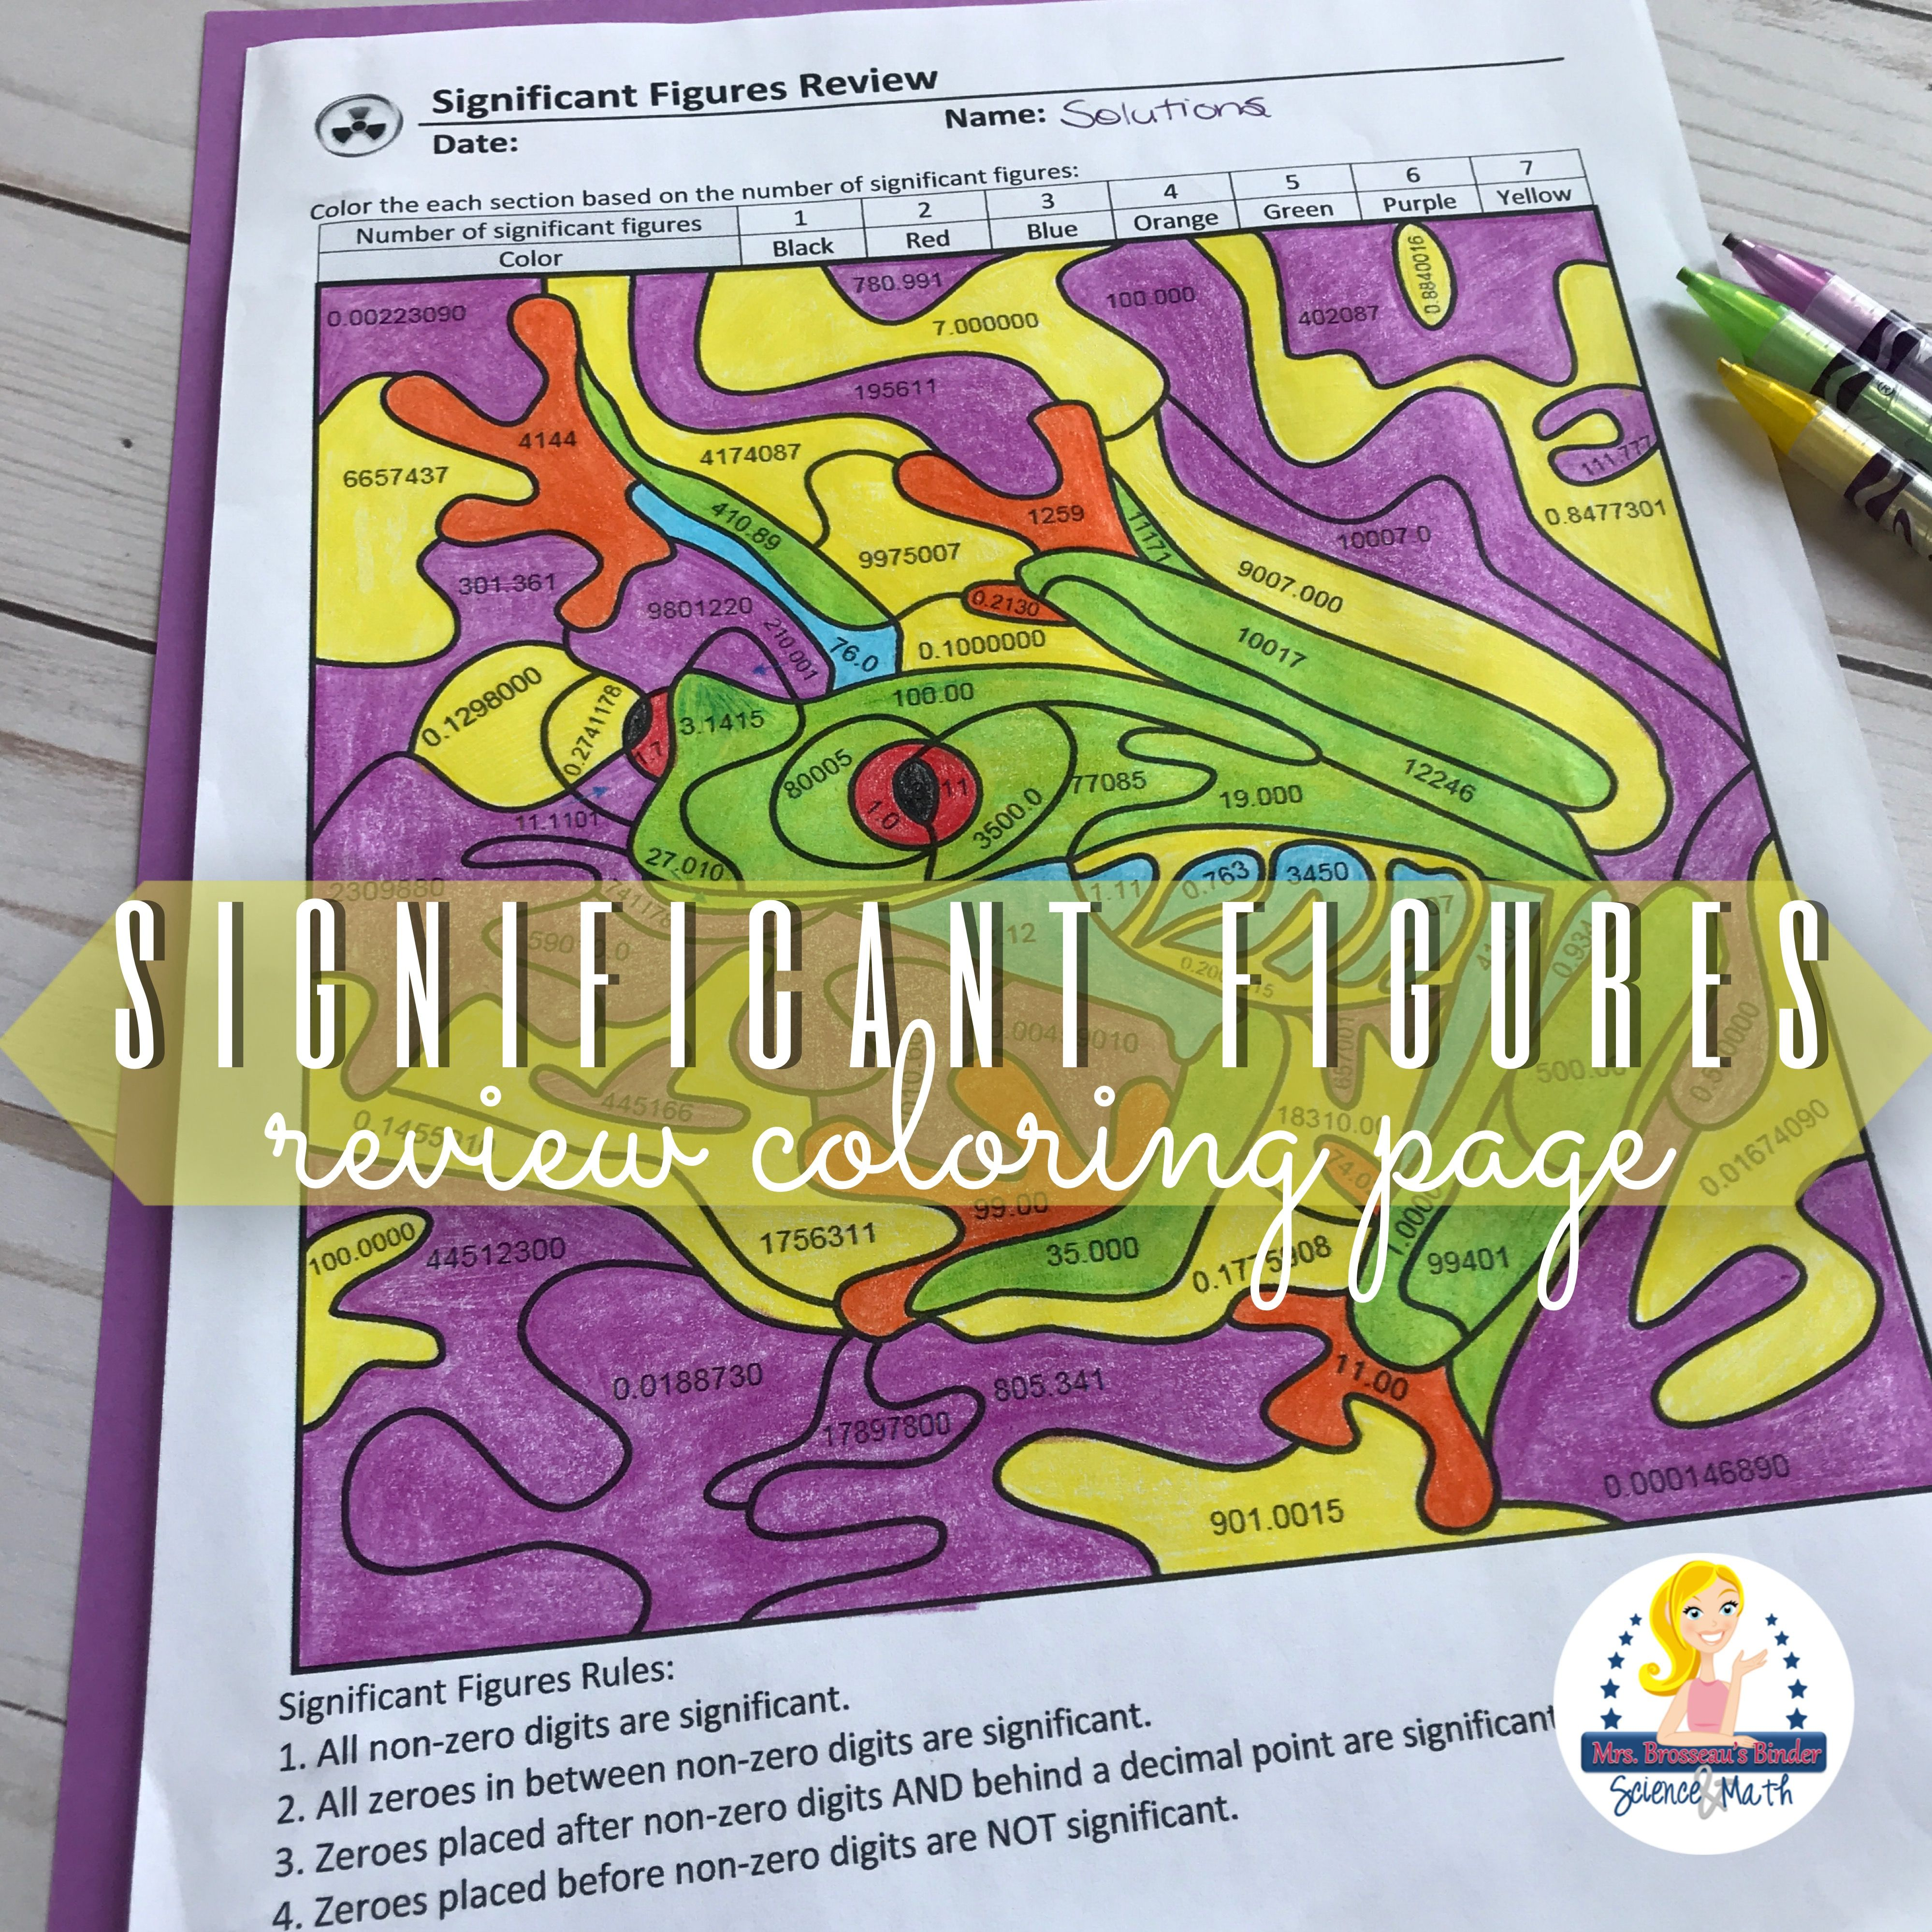 Significant Figures Review Coloring Page Physical Science Coloring Pages Inspirational Coloring Pages [ 3997 x 3997 Pixel ]